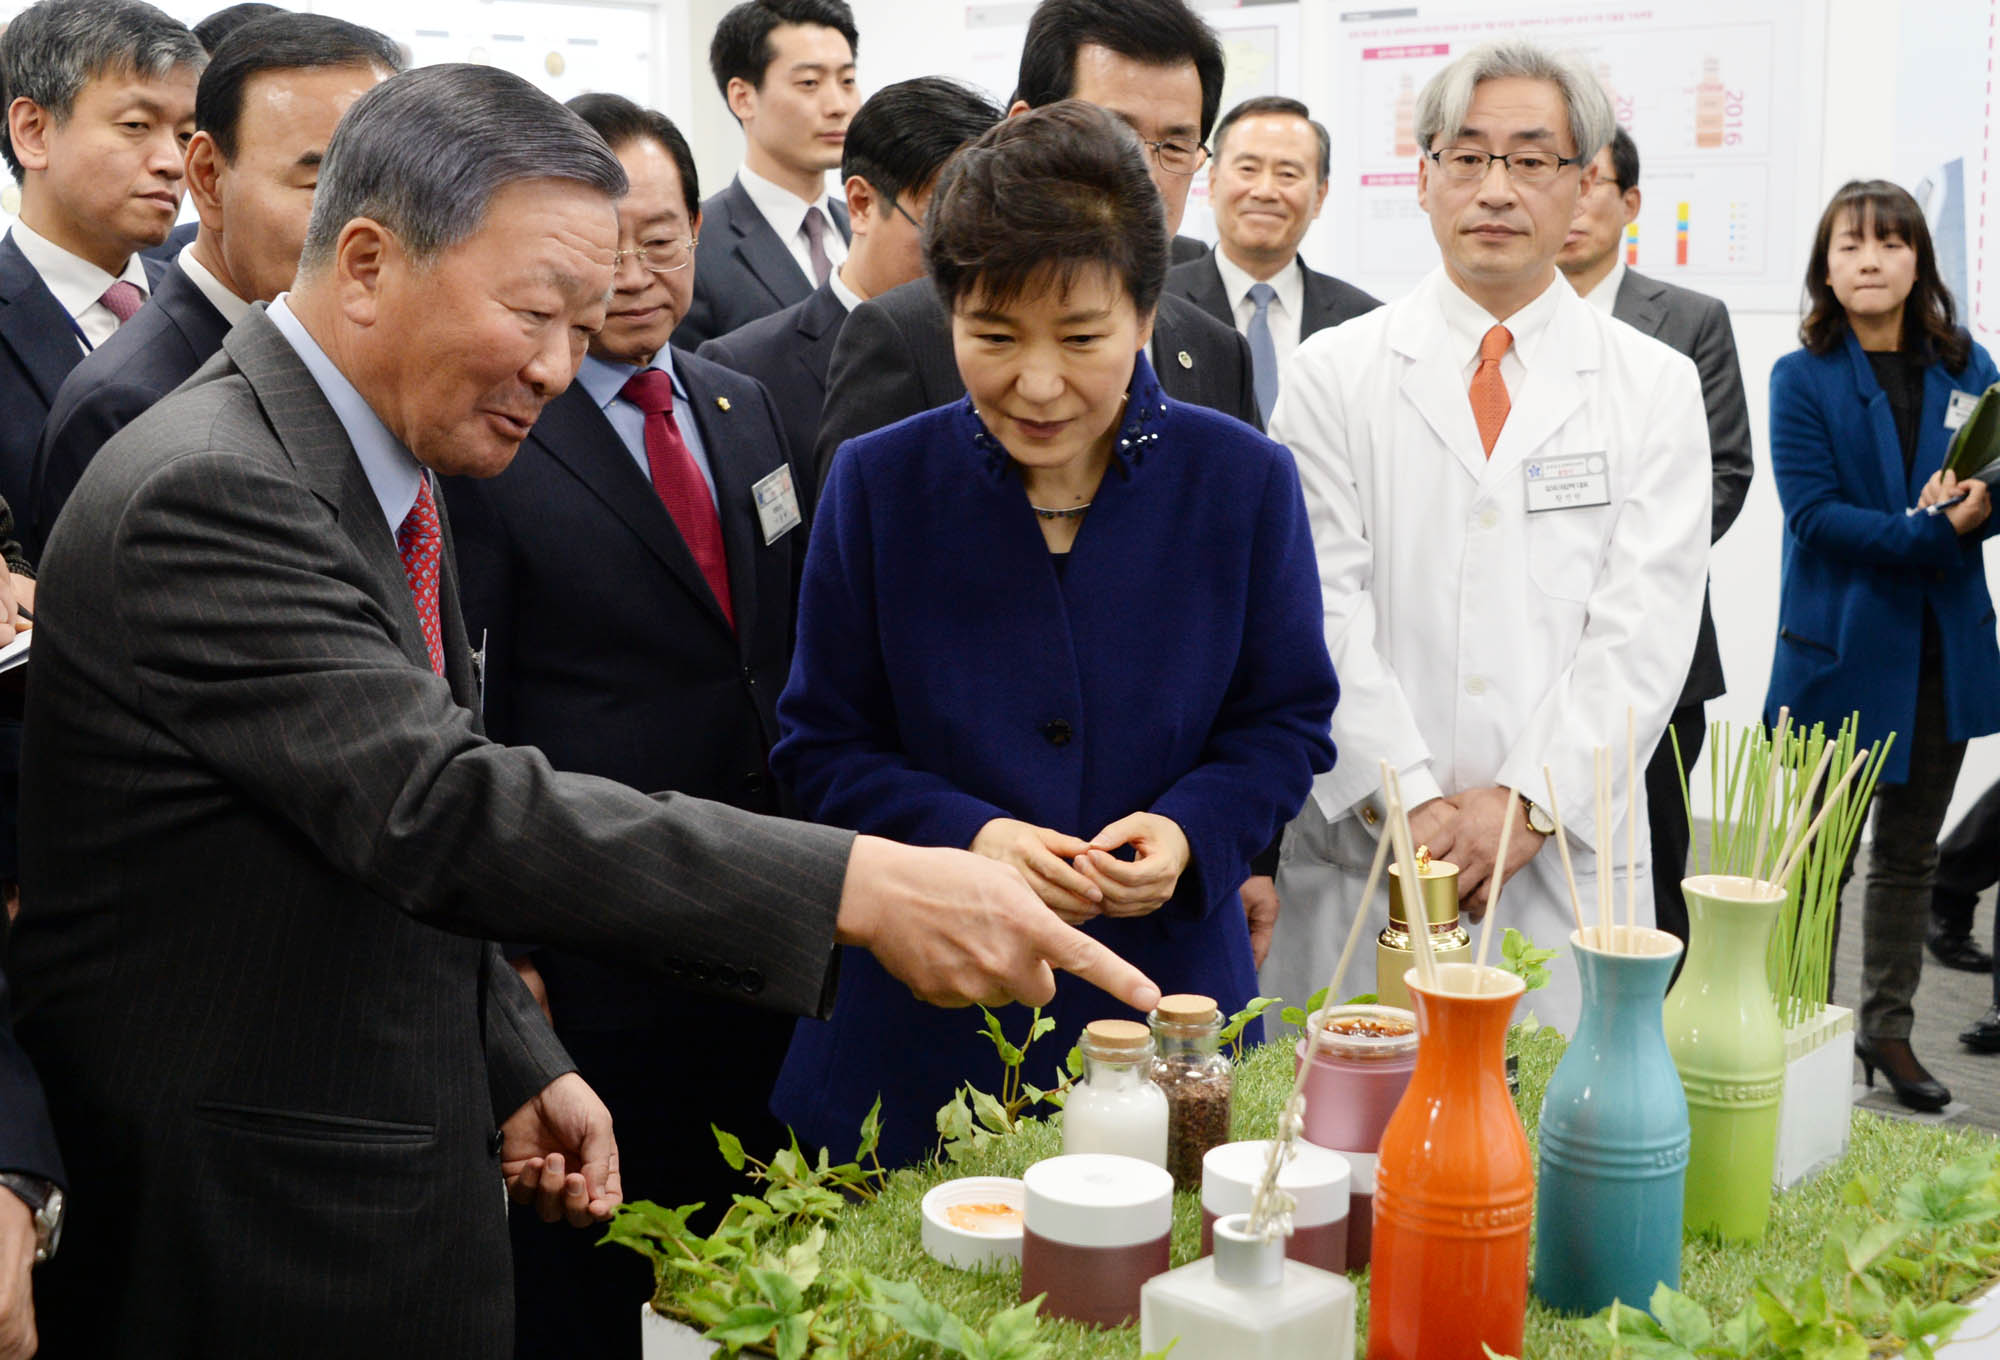 LG Group chairman Koo Bon-moo (left) points out the raw materials of cosmetics to President Park Geun-hye.